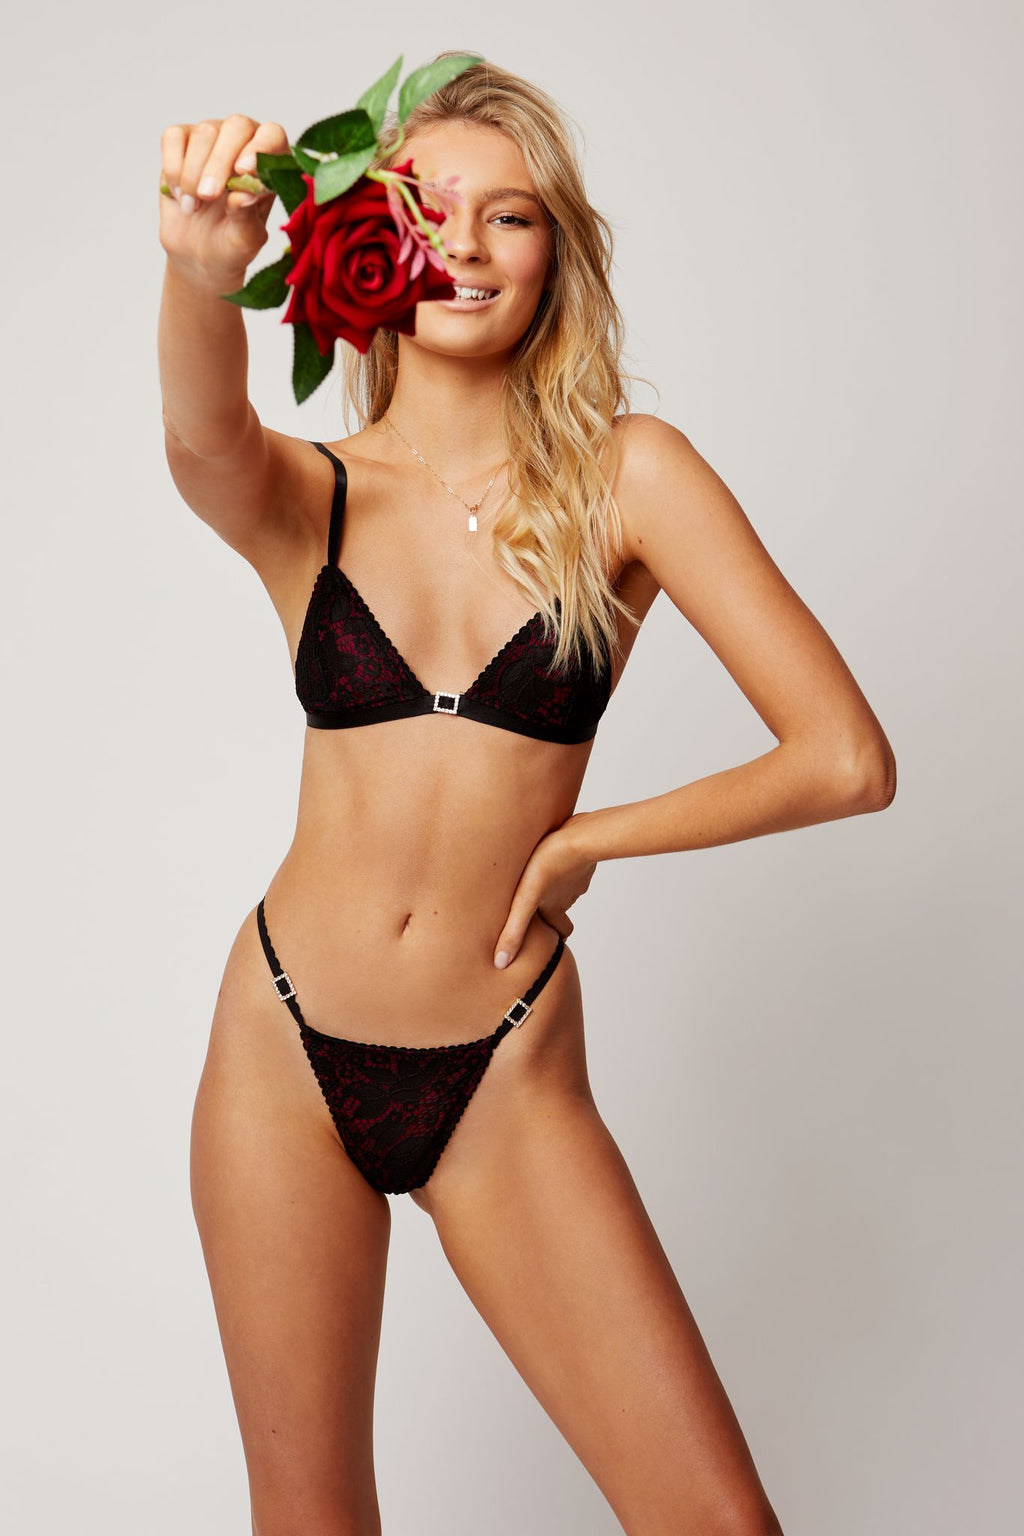 Red and black bralette with black lace and diamonte buckle, matching g-string